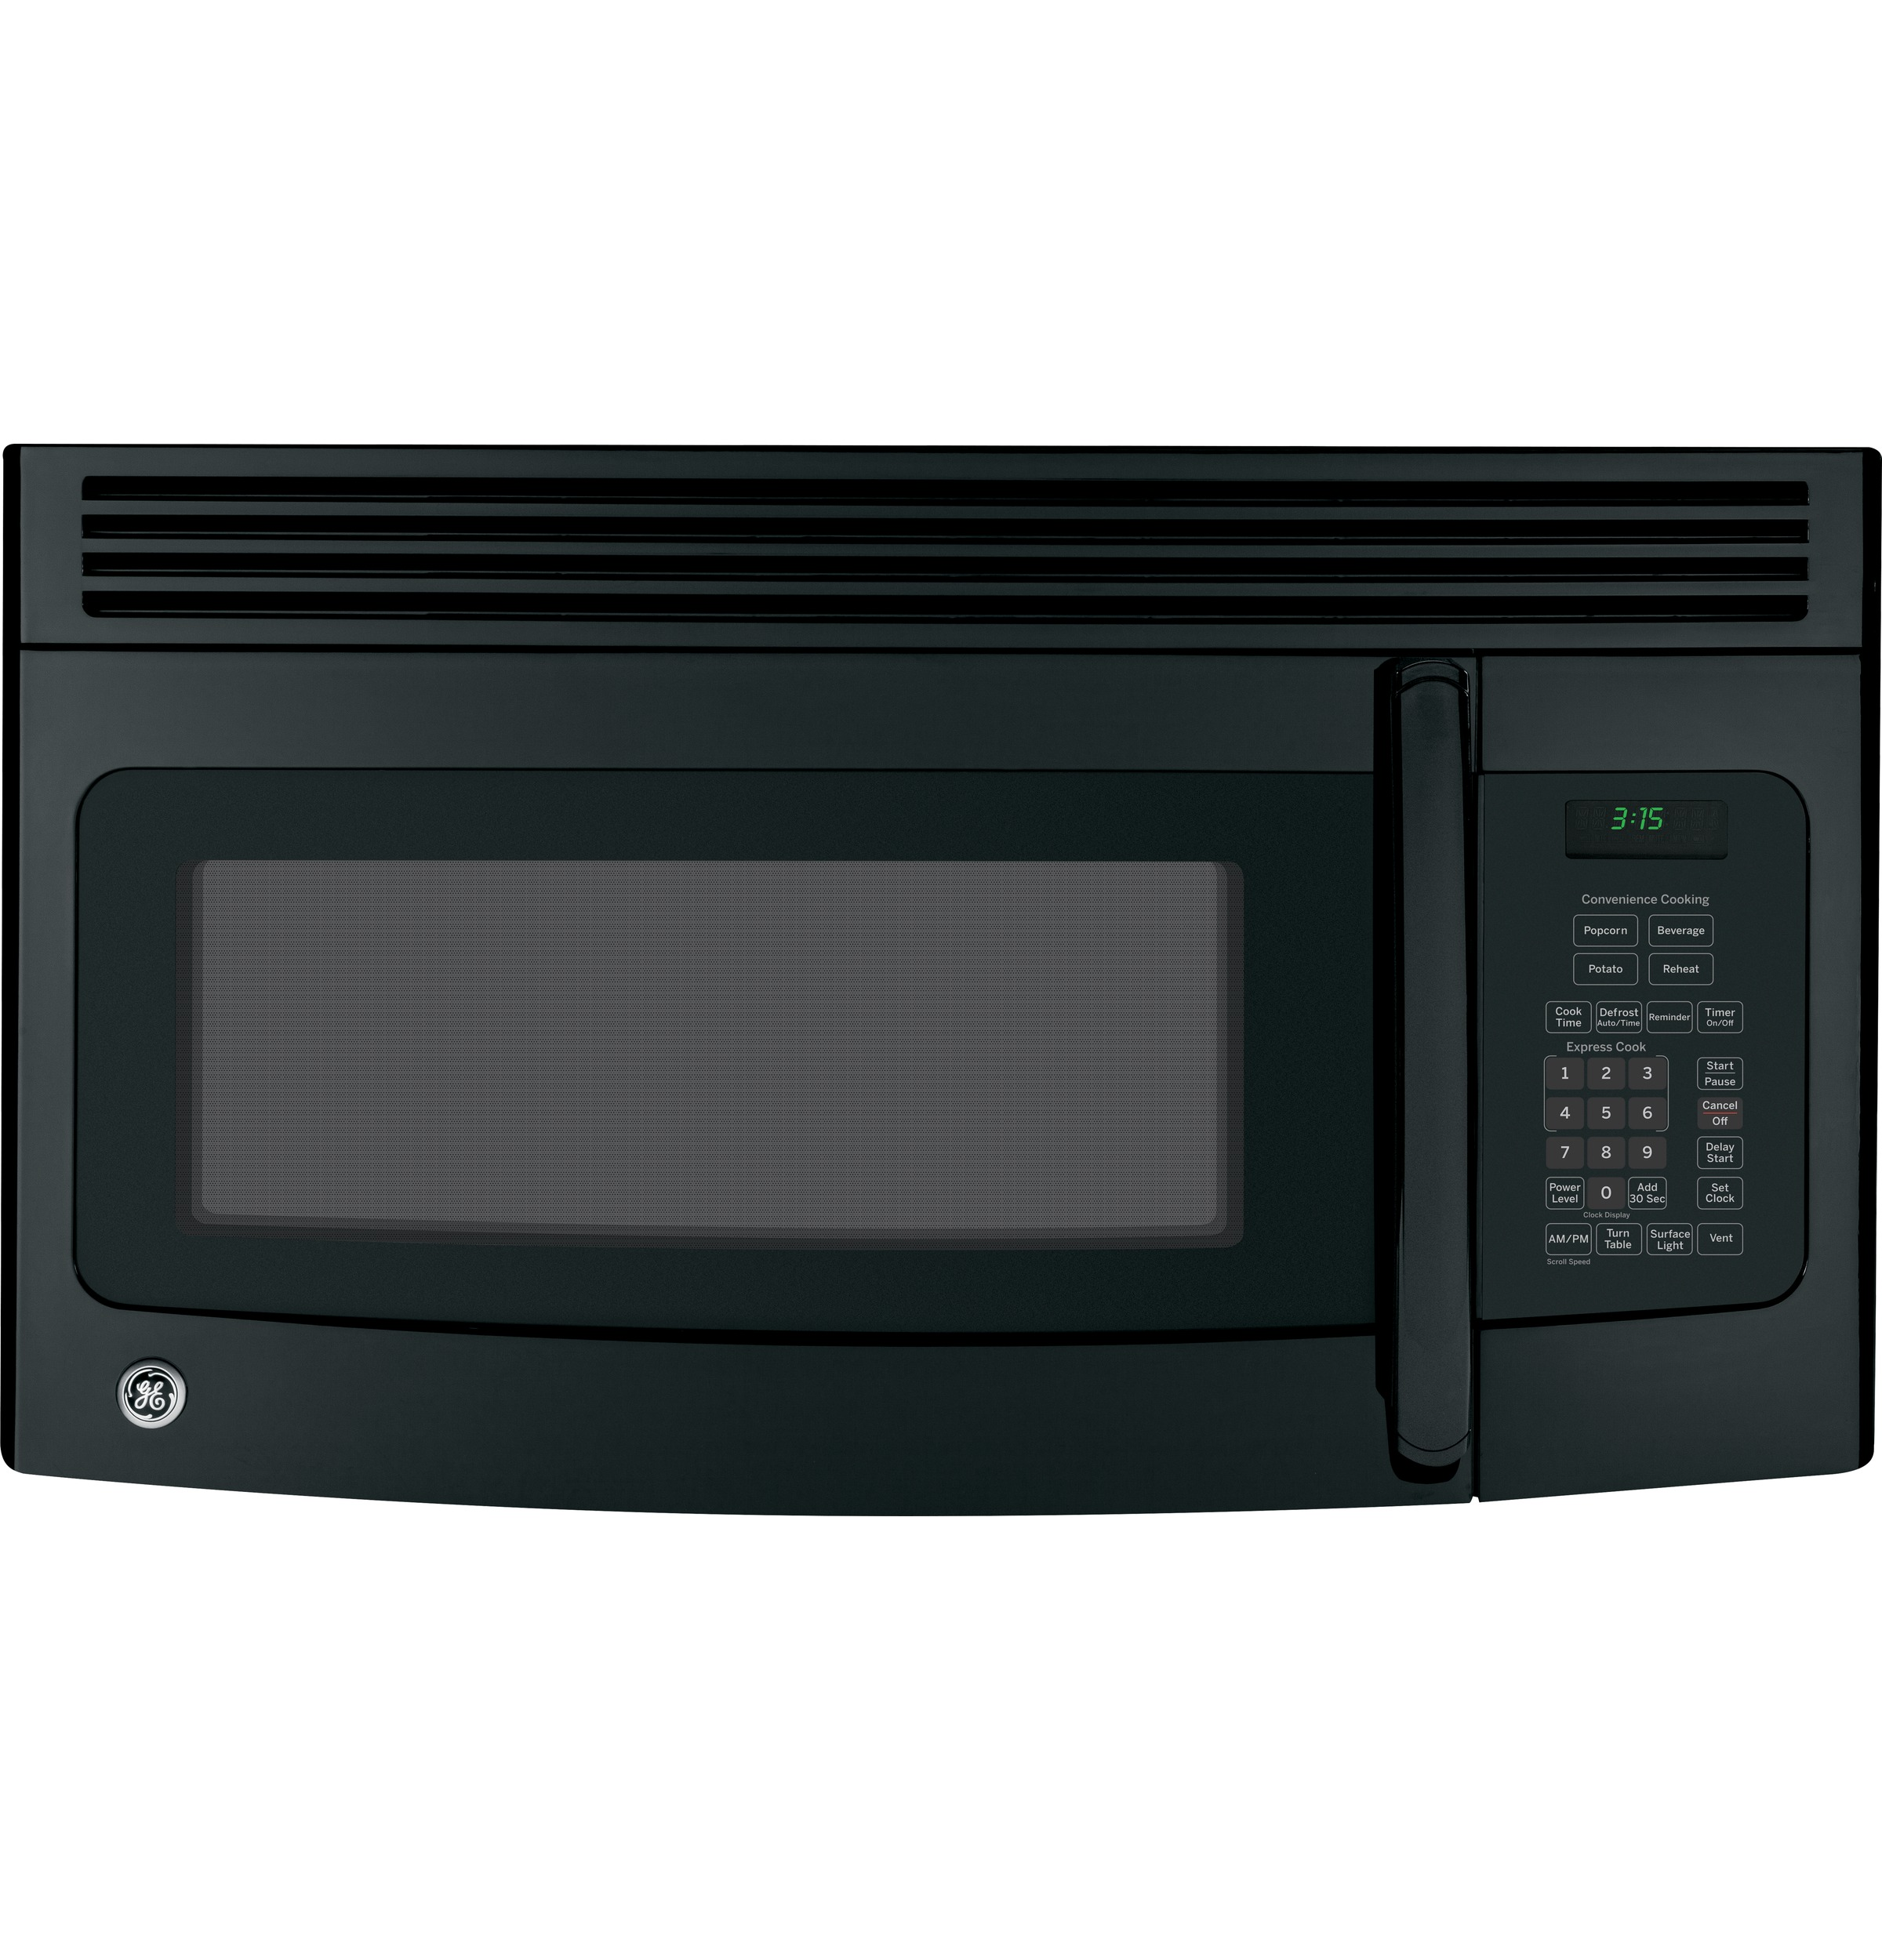 Ge 174 1 5 Cu Ft Over The Range Microwave Oven With